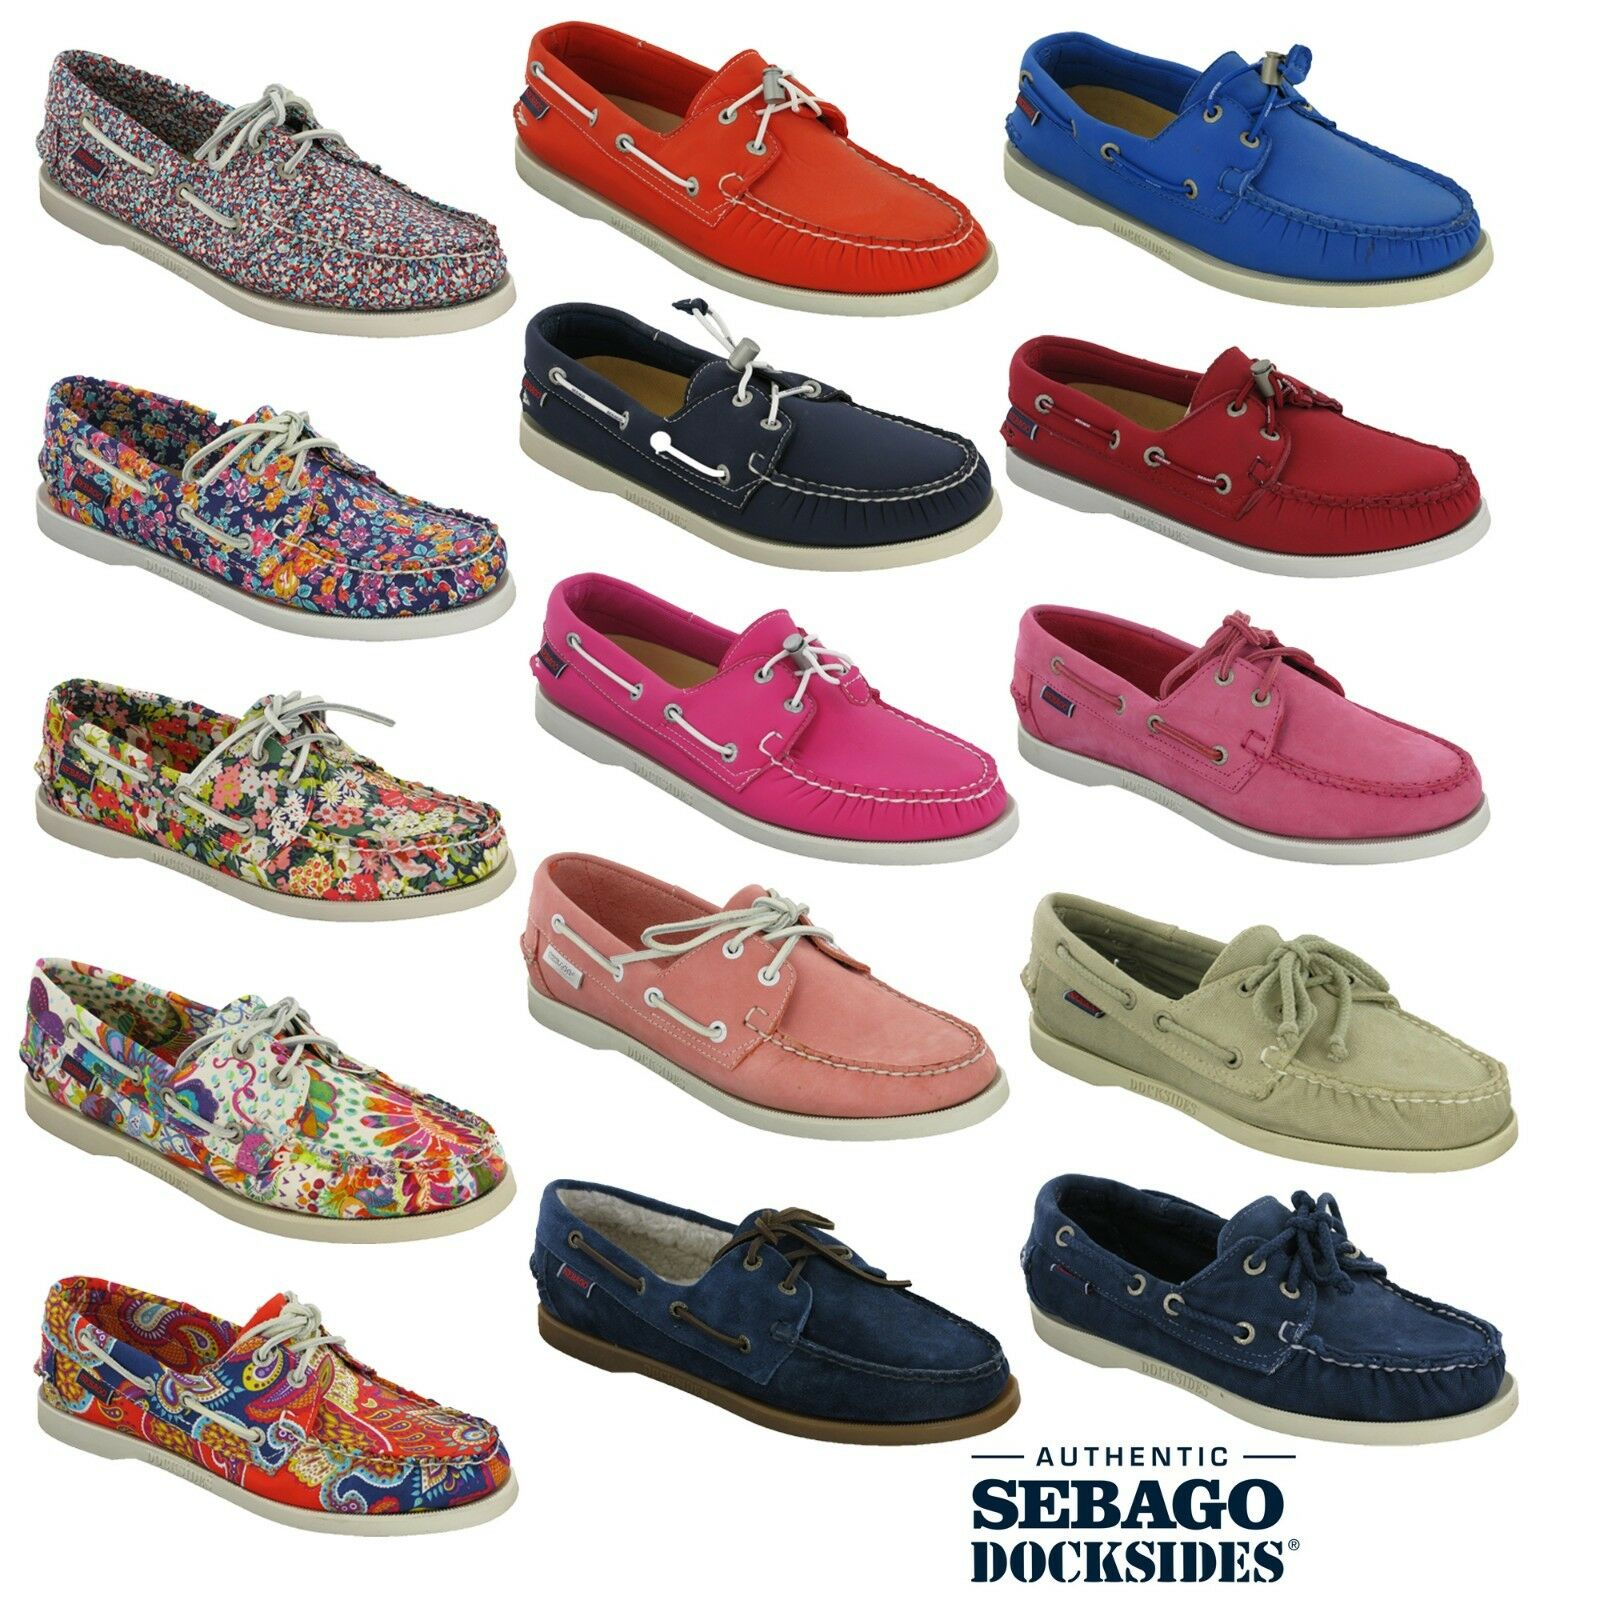 Sebago Plaza femmes Casual Low Leather Suede Loafer Slip On Flat chaussures UK2.5-9.5